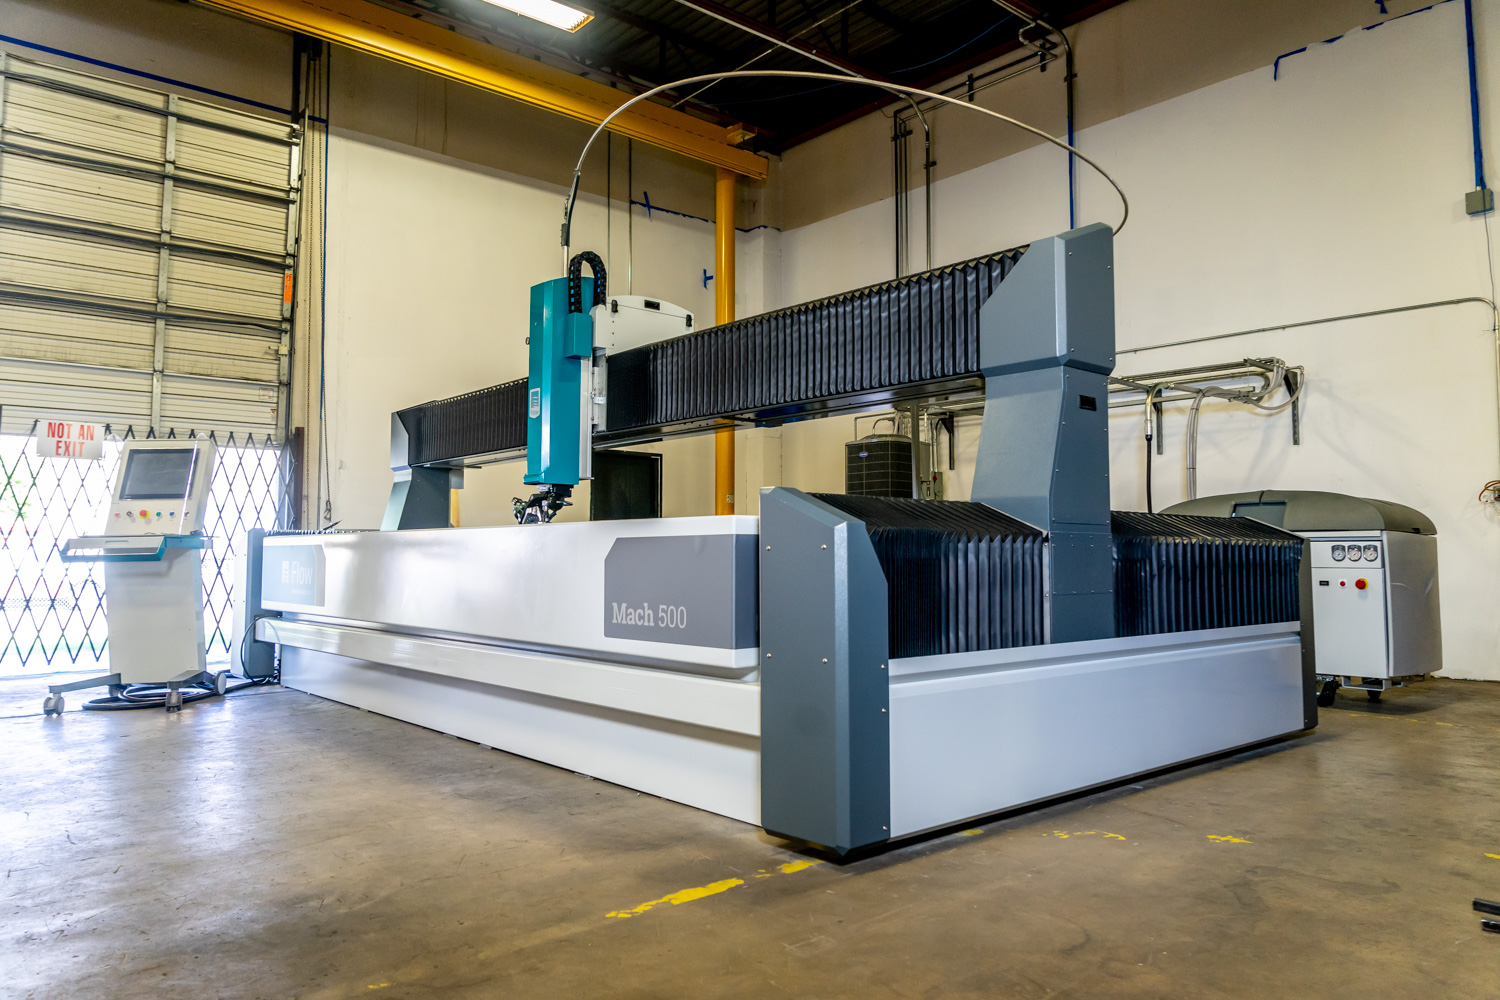 Flow-Mach-500-Waterjet-Cutting-Services-Express-Fabrication-San-Antonio-Hi-Res-1